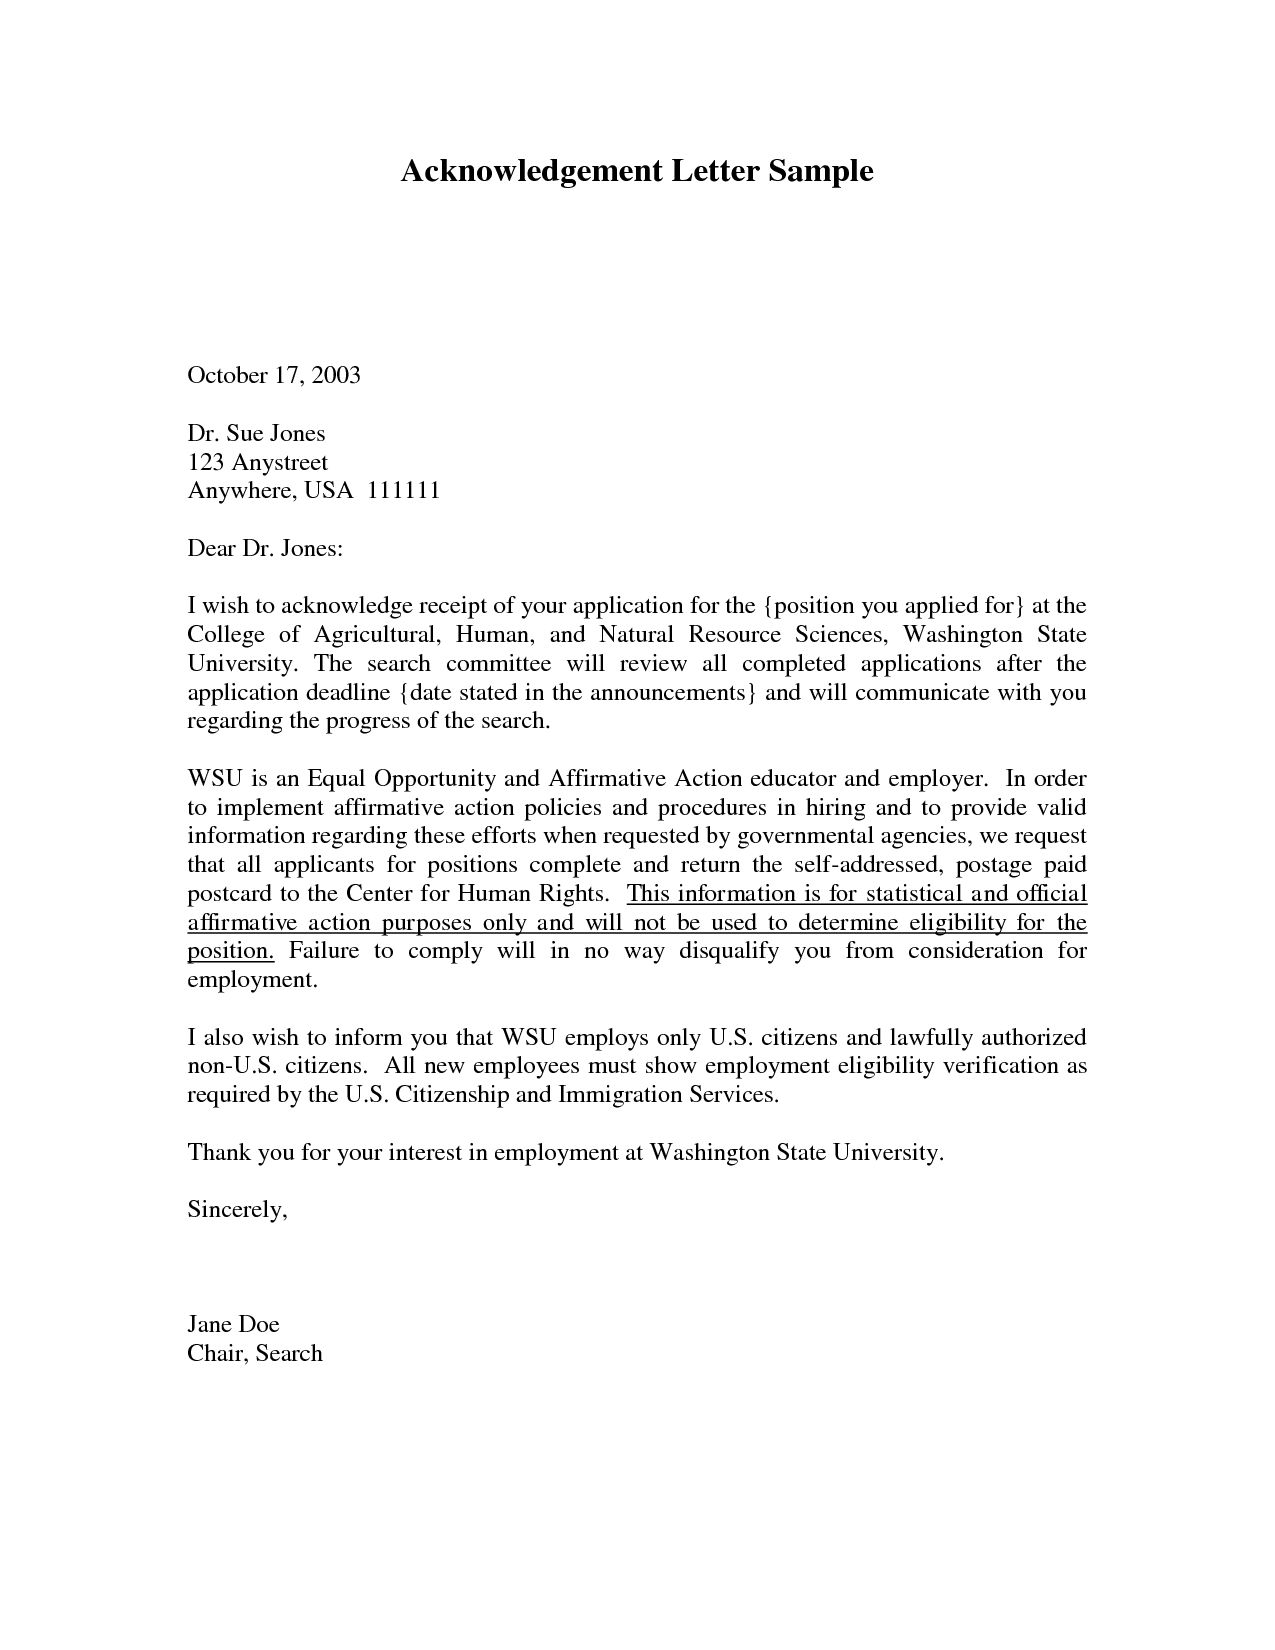 Immigration Reference Letter Template - Intent to Marryr High Brilliant Ideas Re Mendation forn